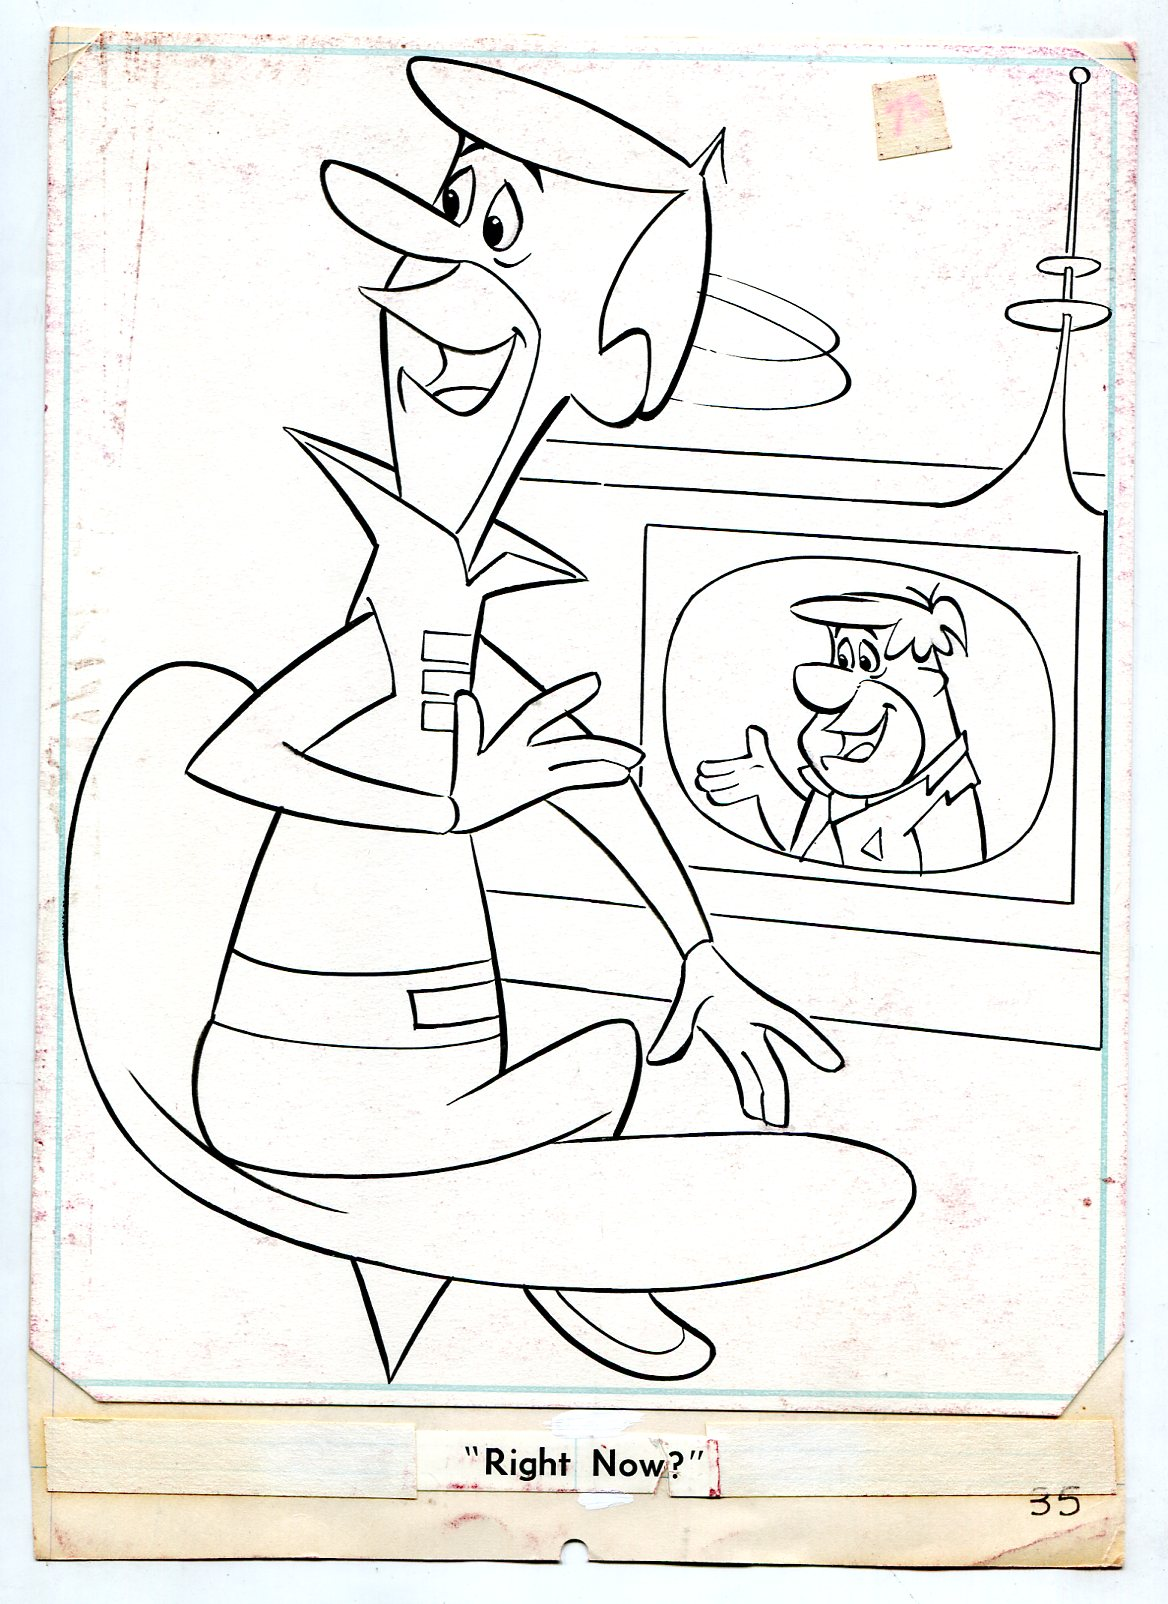 Jetsons Comic Original Art Coloring Book ...